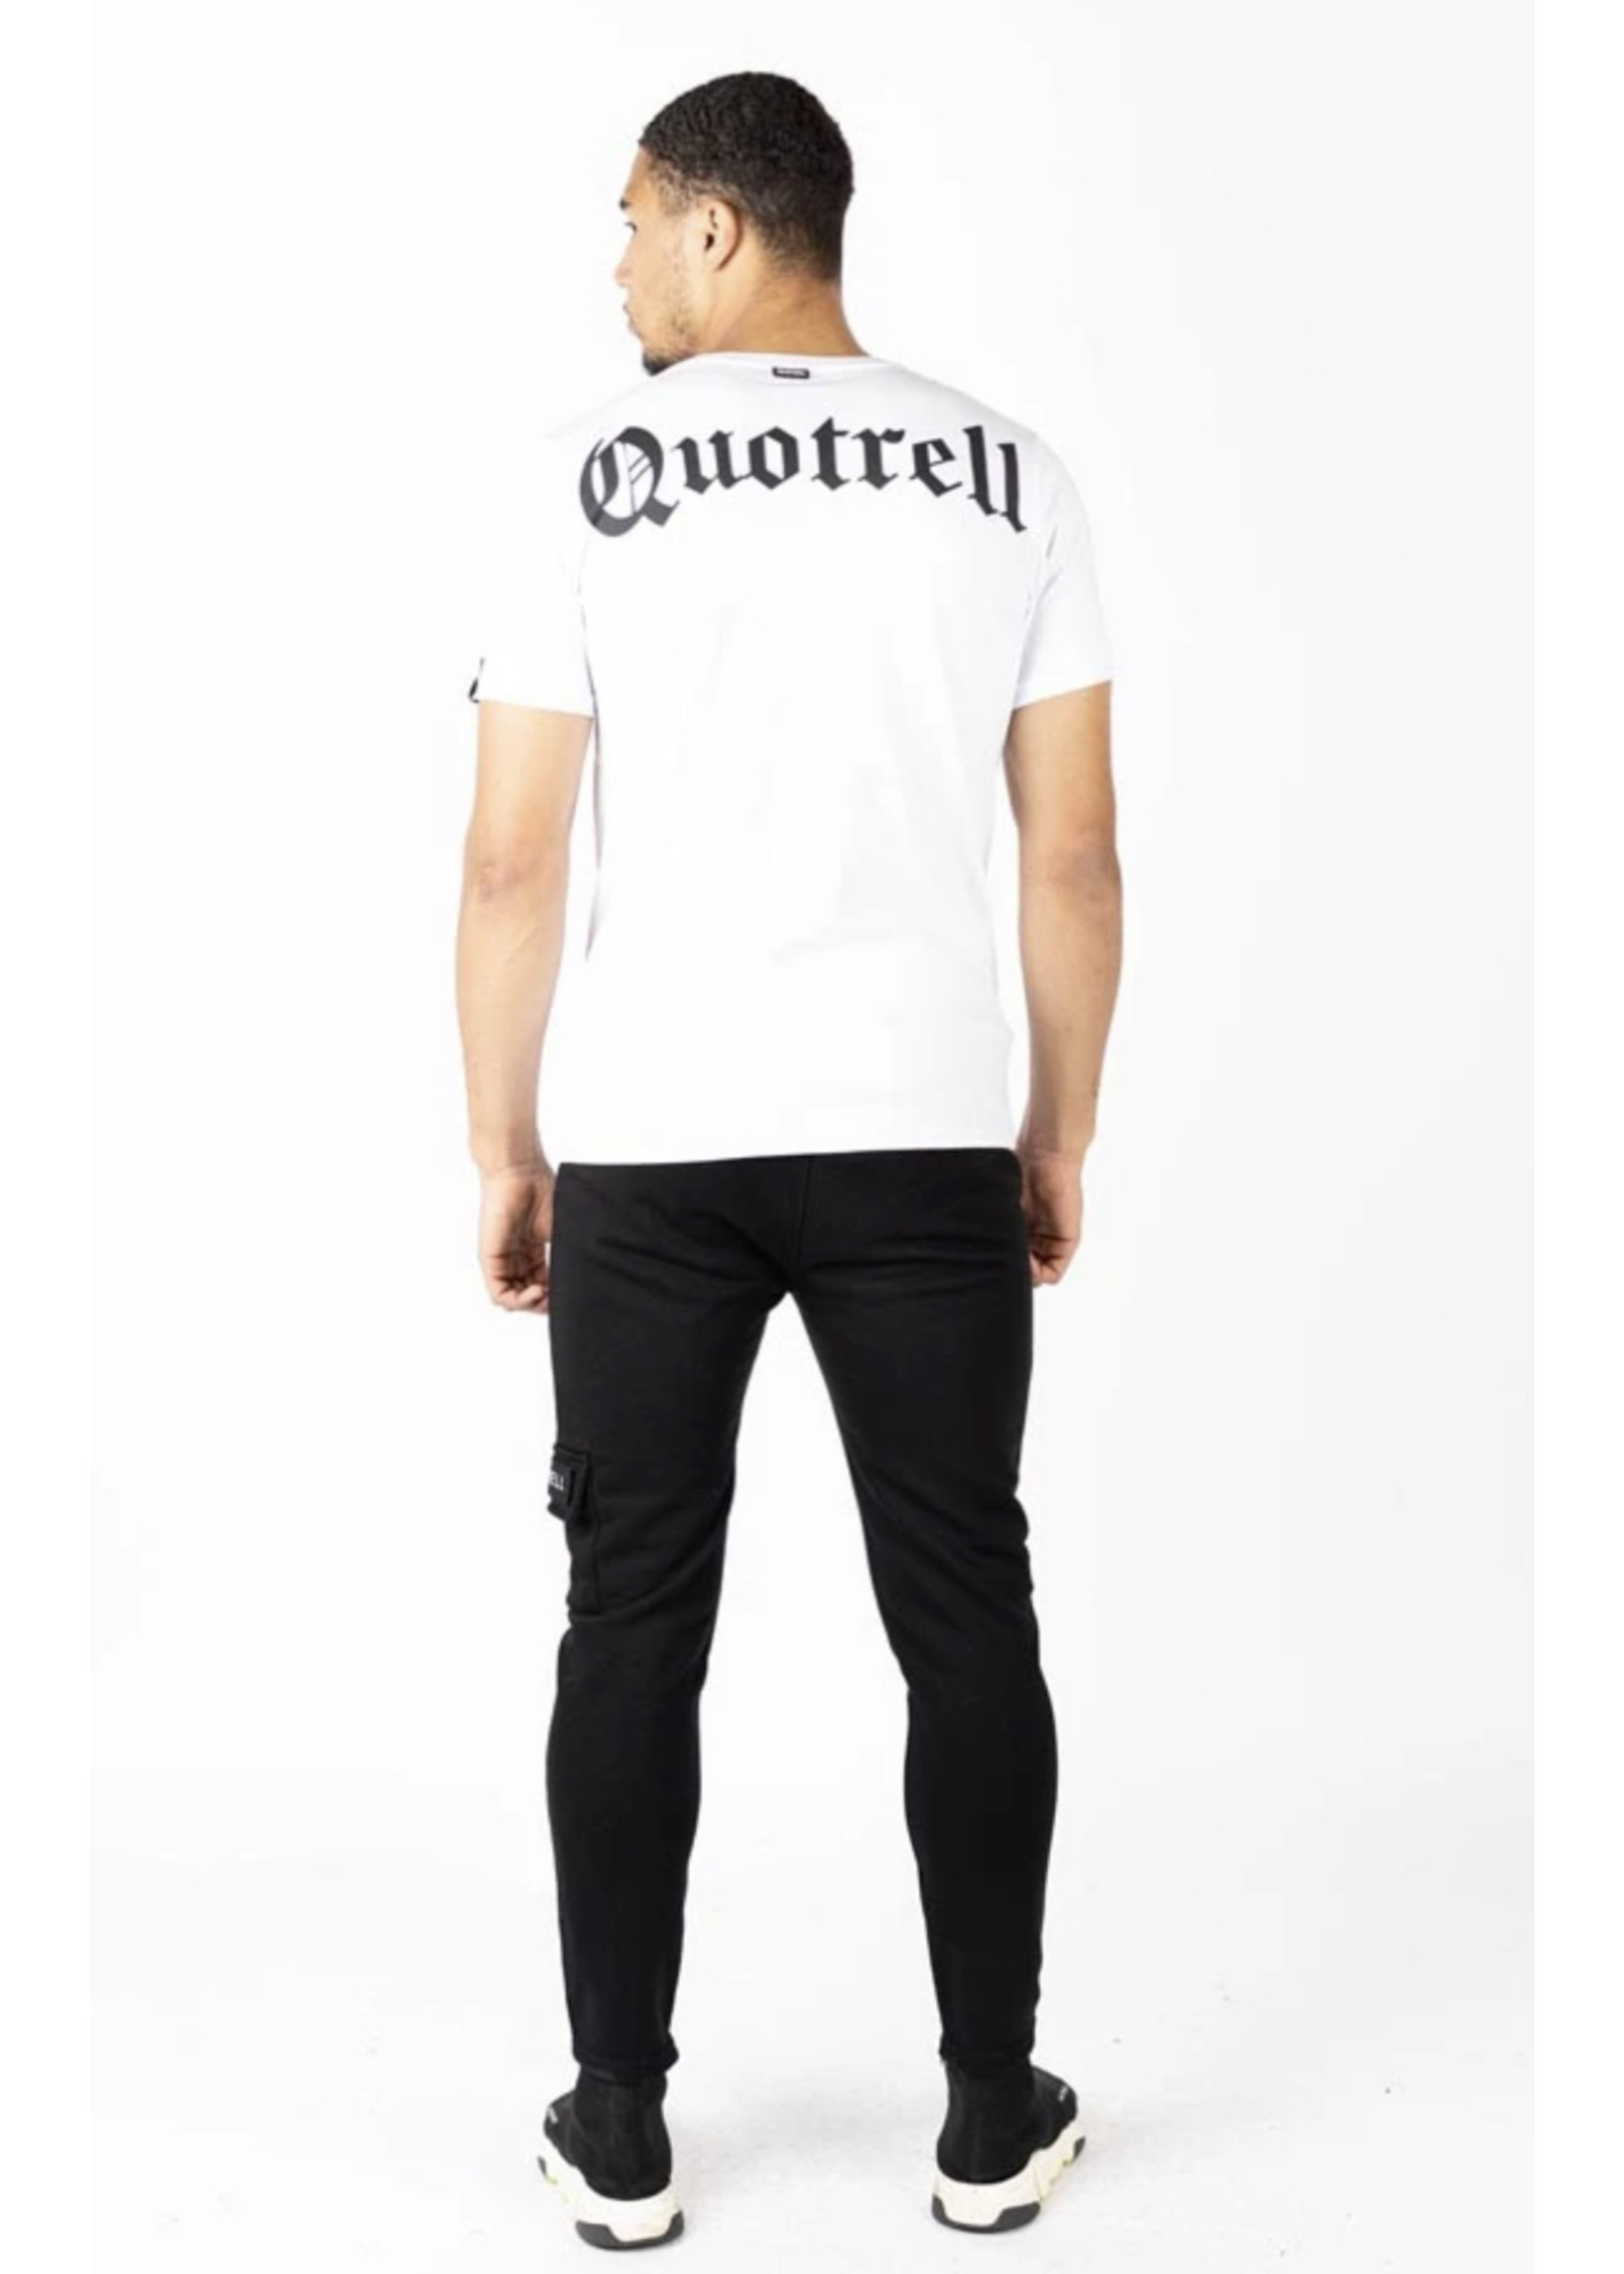 Quotrell QUOTRELL Wing Tee 2.0 - White